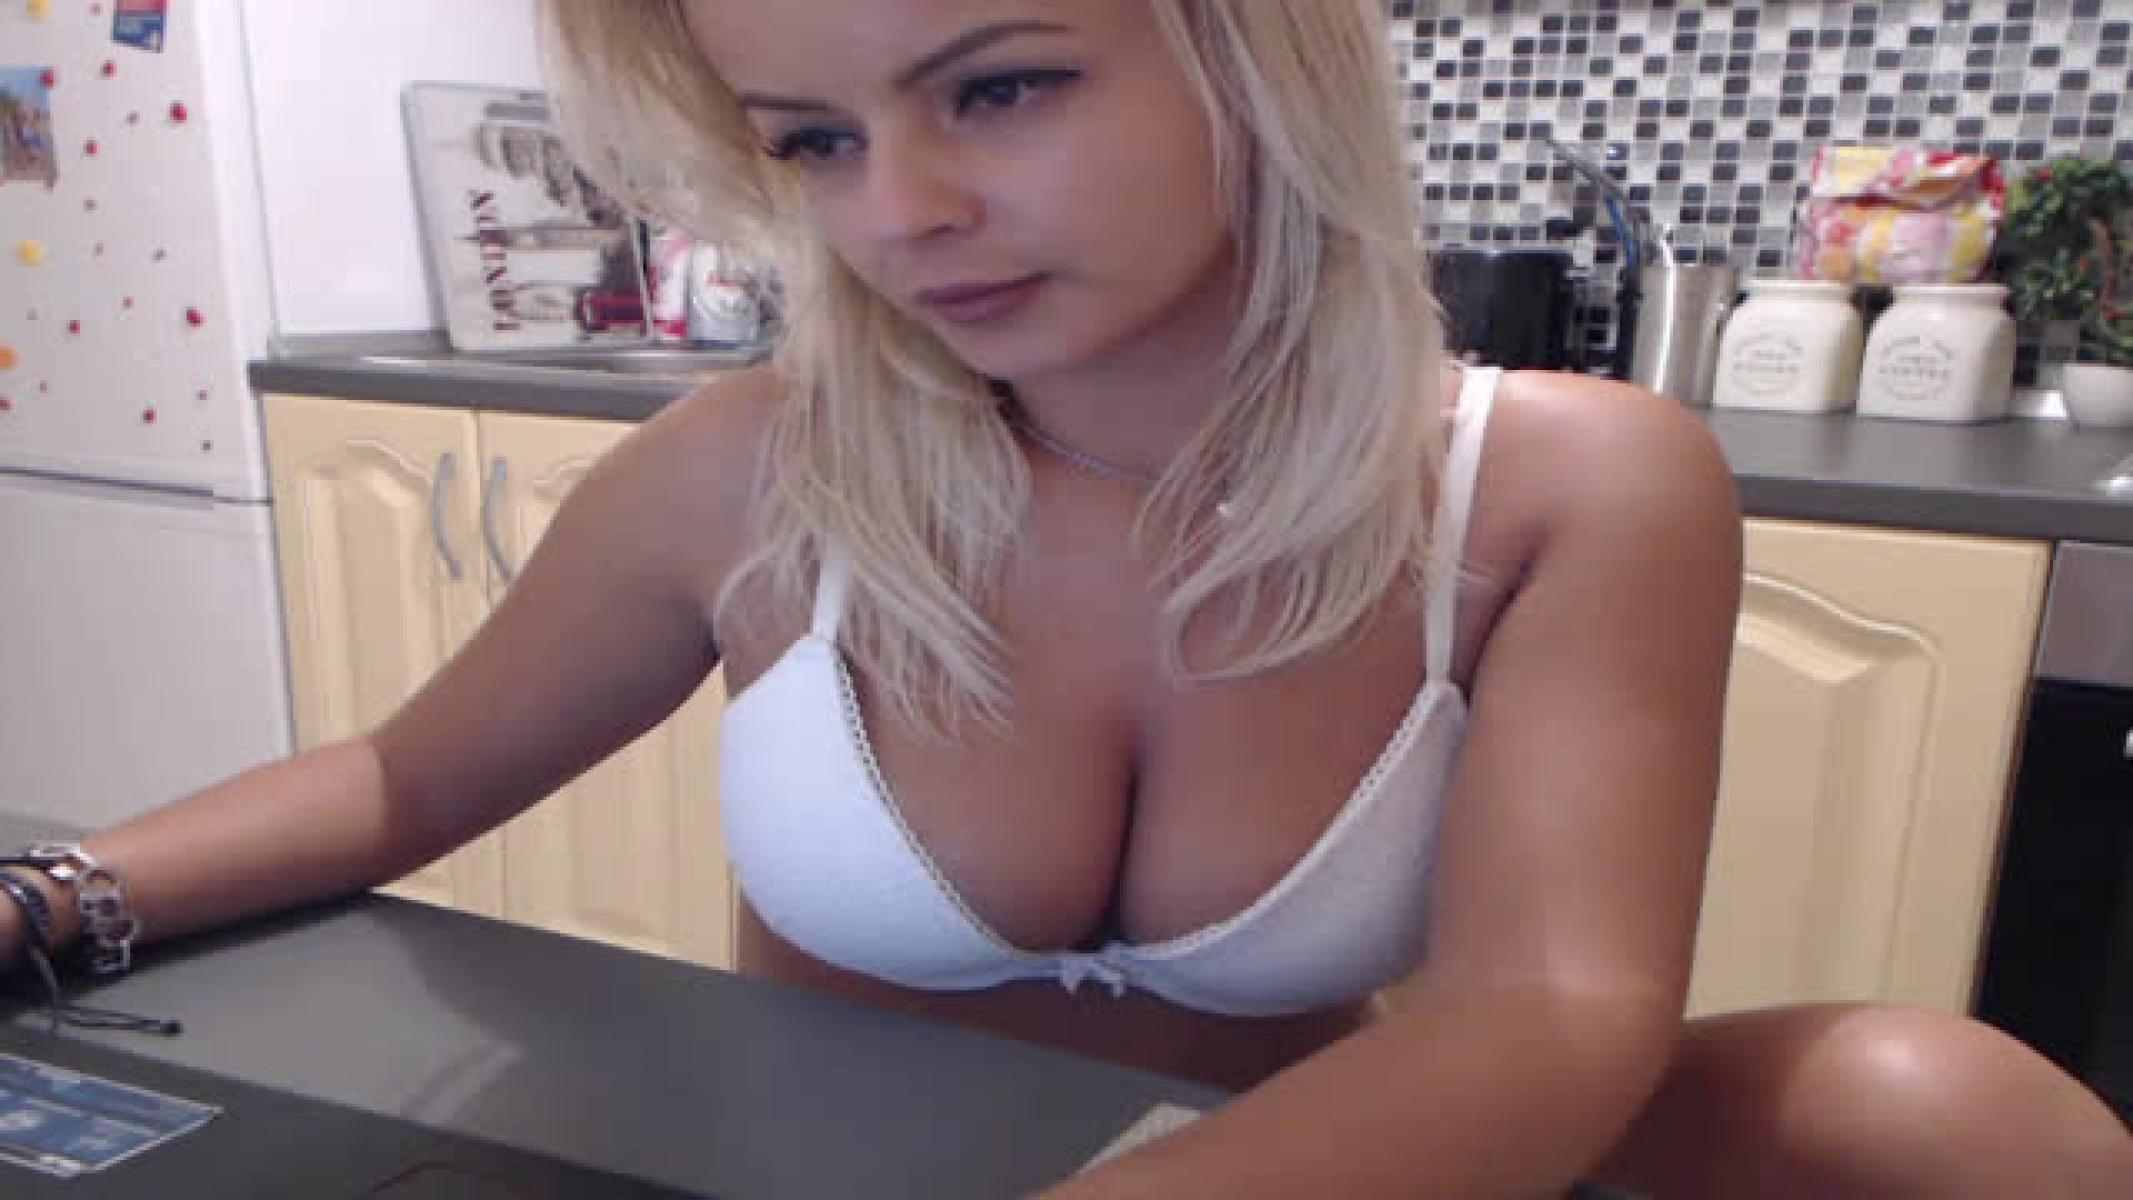 Cute Blonde Naked Girl Shows Her Breasts And Whole Body In Cam